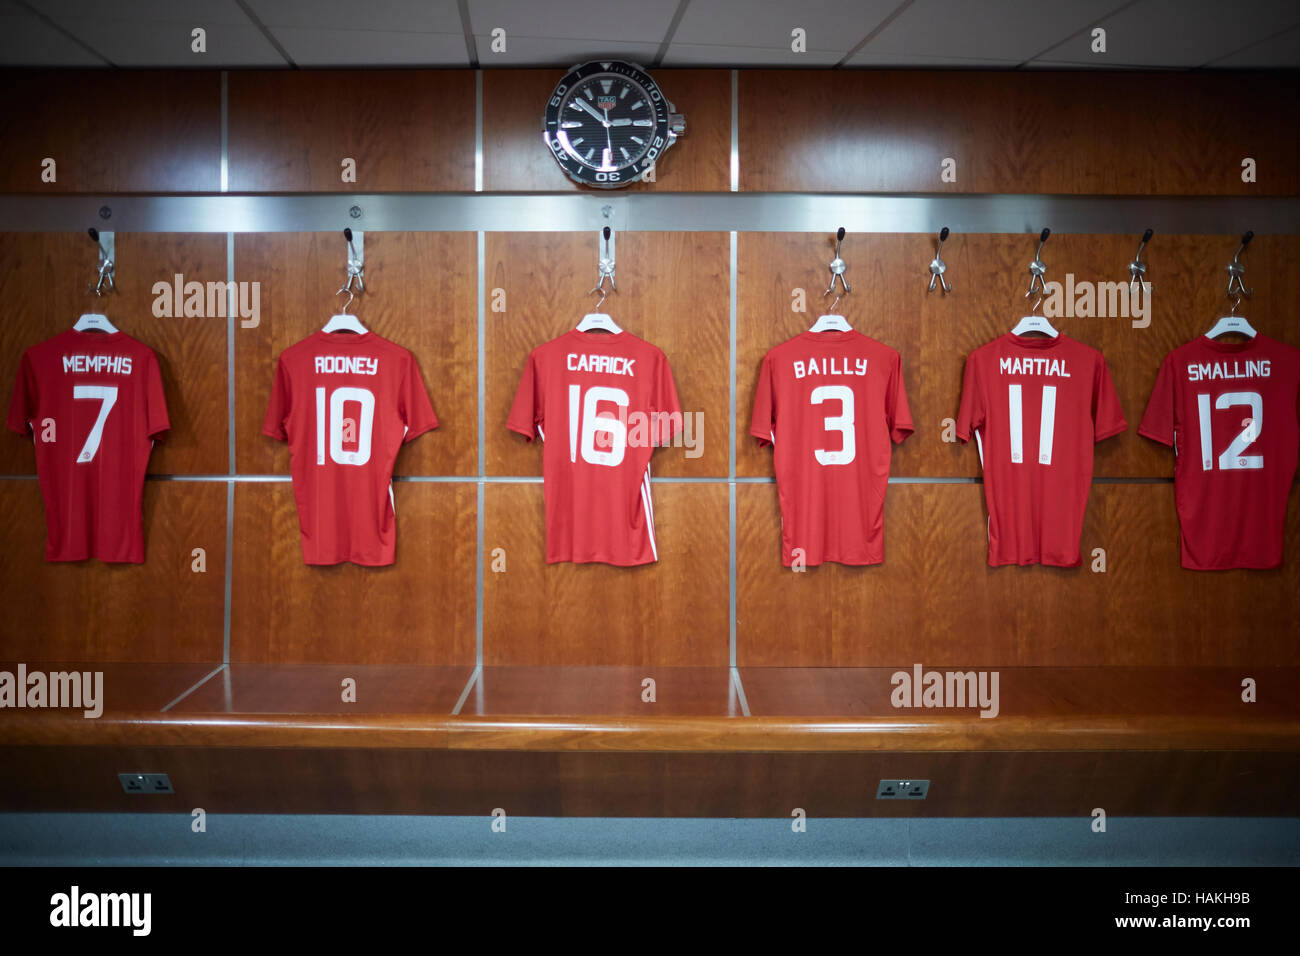 Manchester United Dressing Room High Resolution Stock Photography And Images Alamy